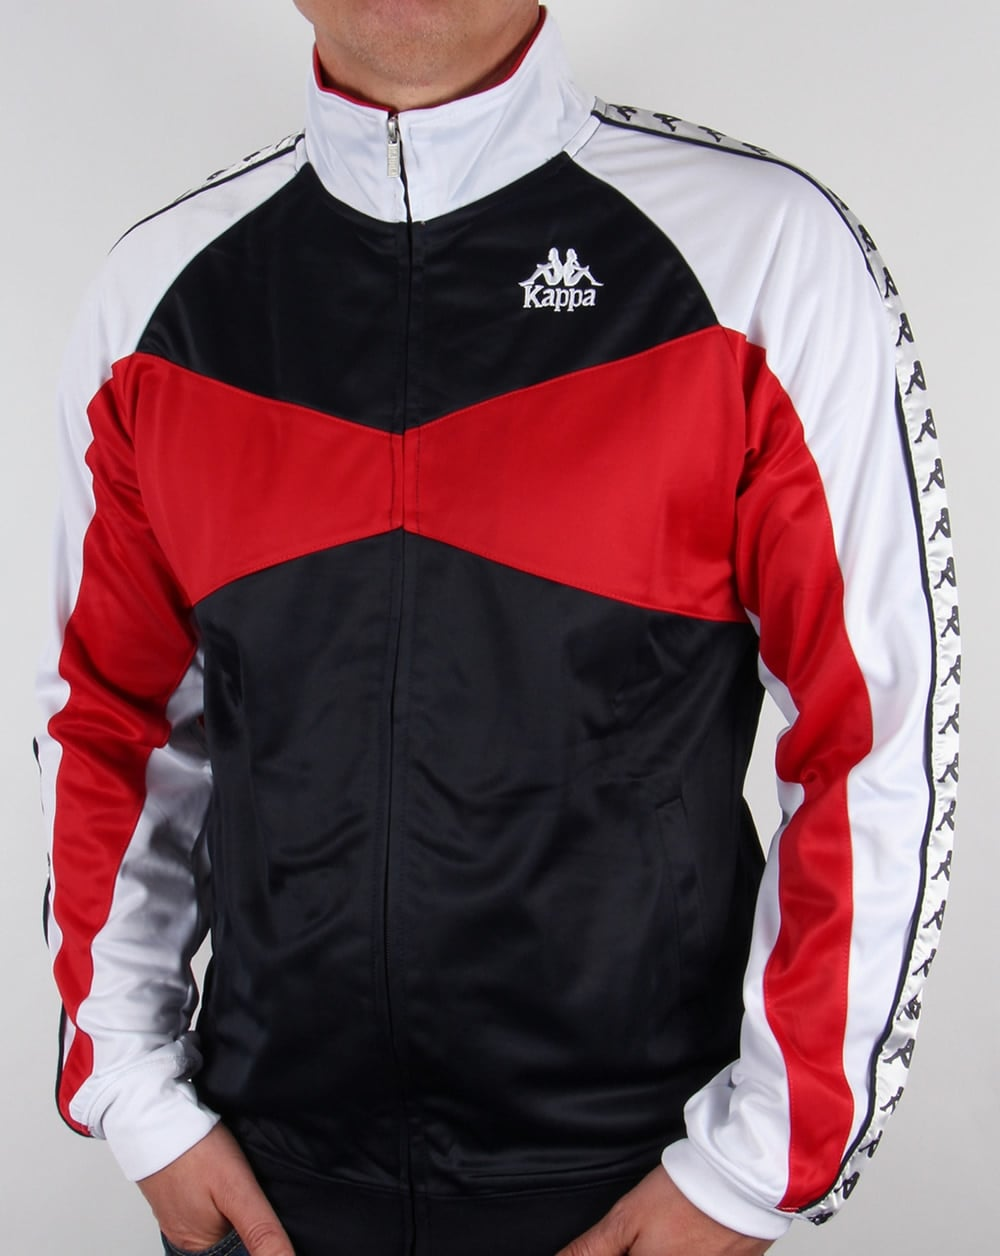 Robe Di Kappa Trafford Track Top Navy/Red/White,tracksuit ...